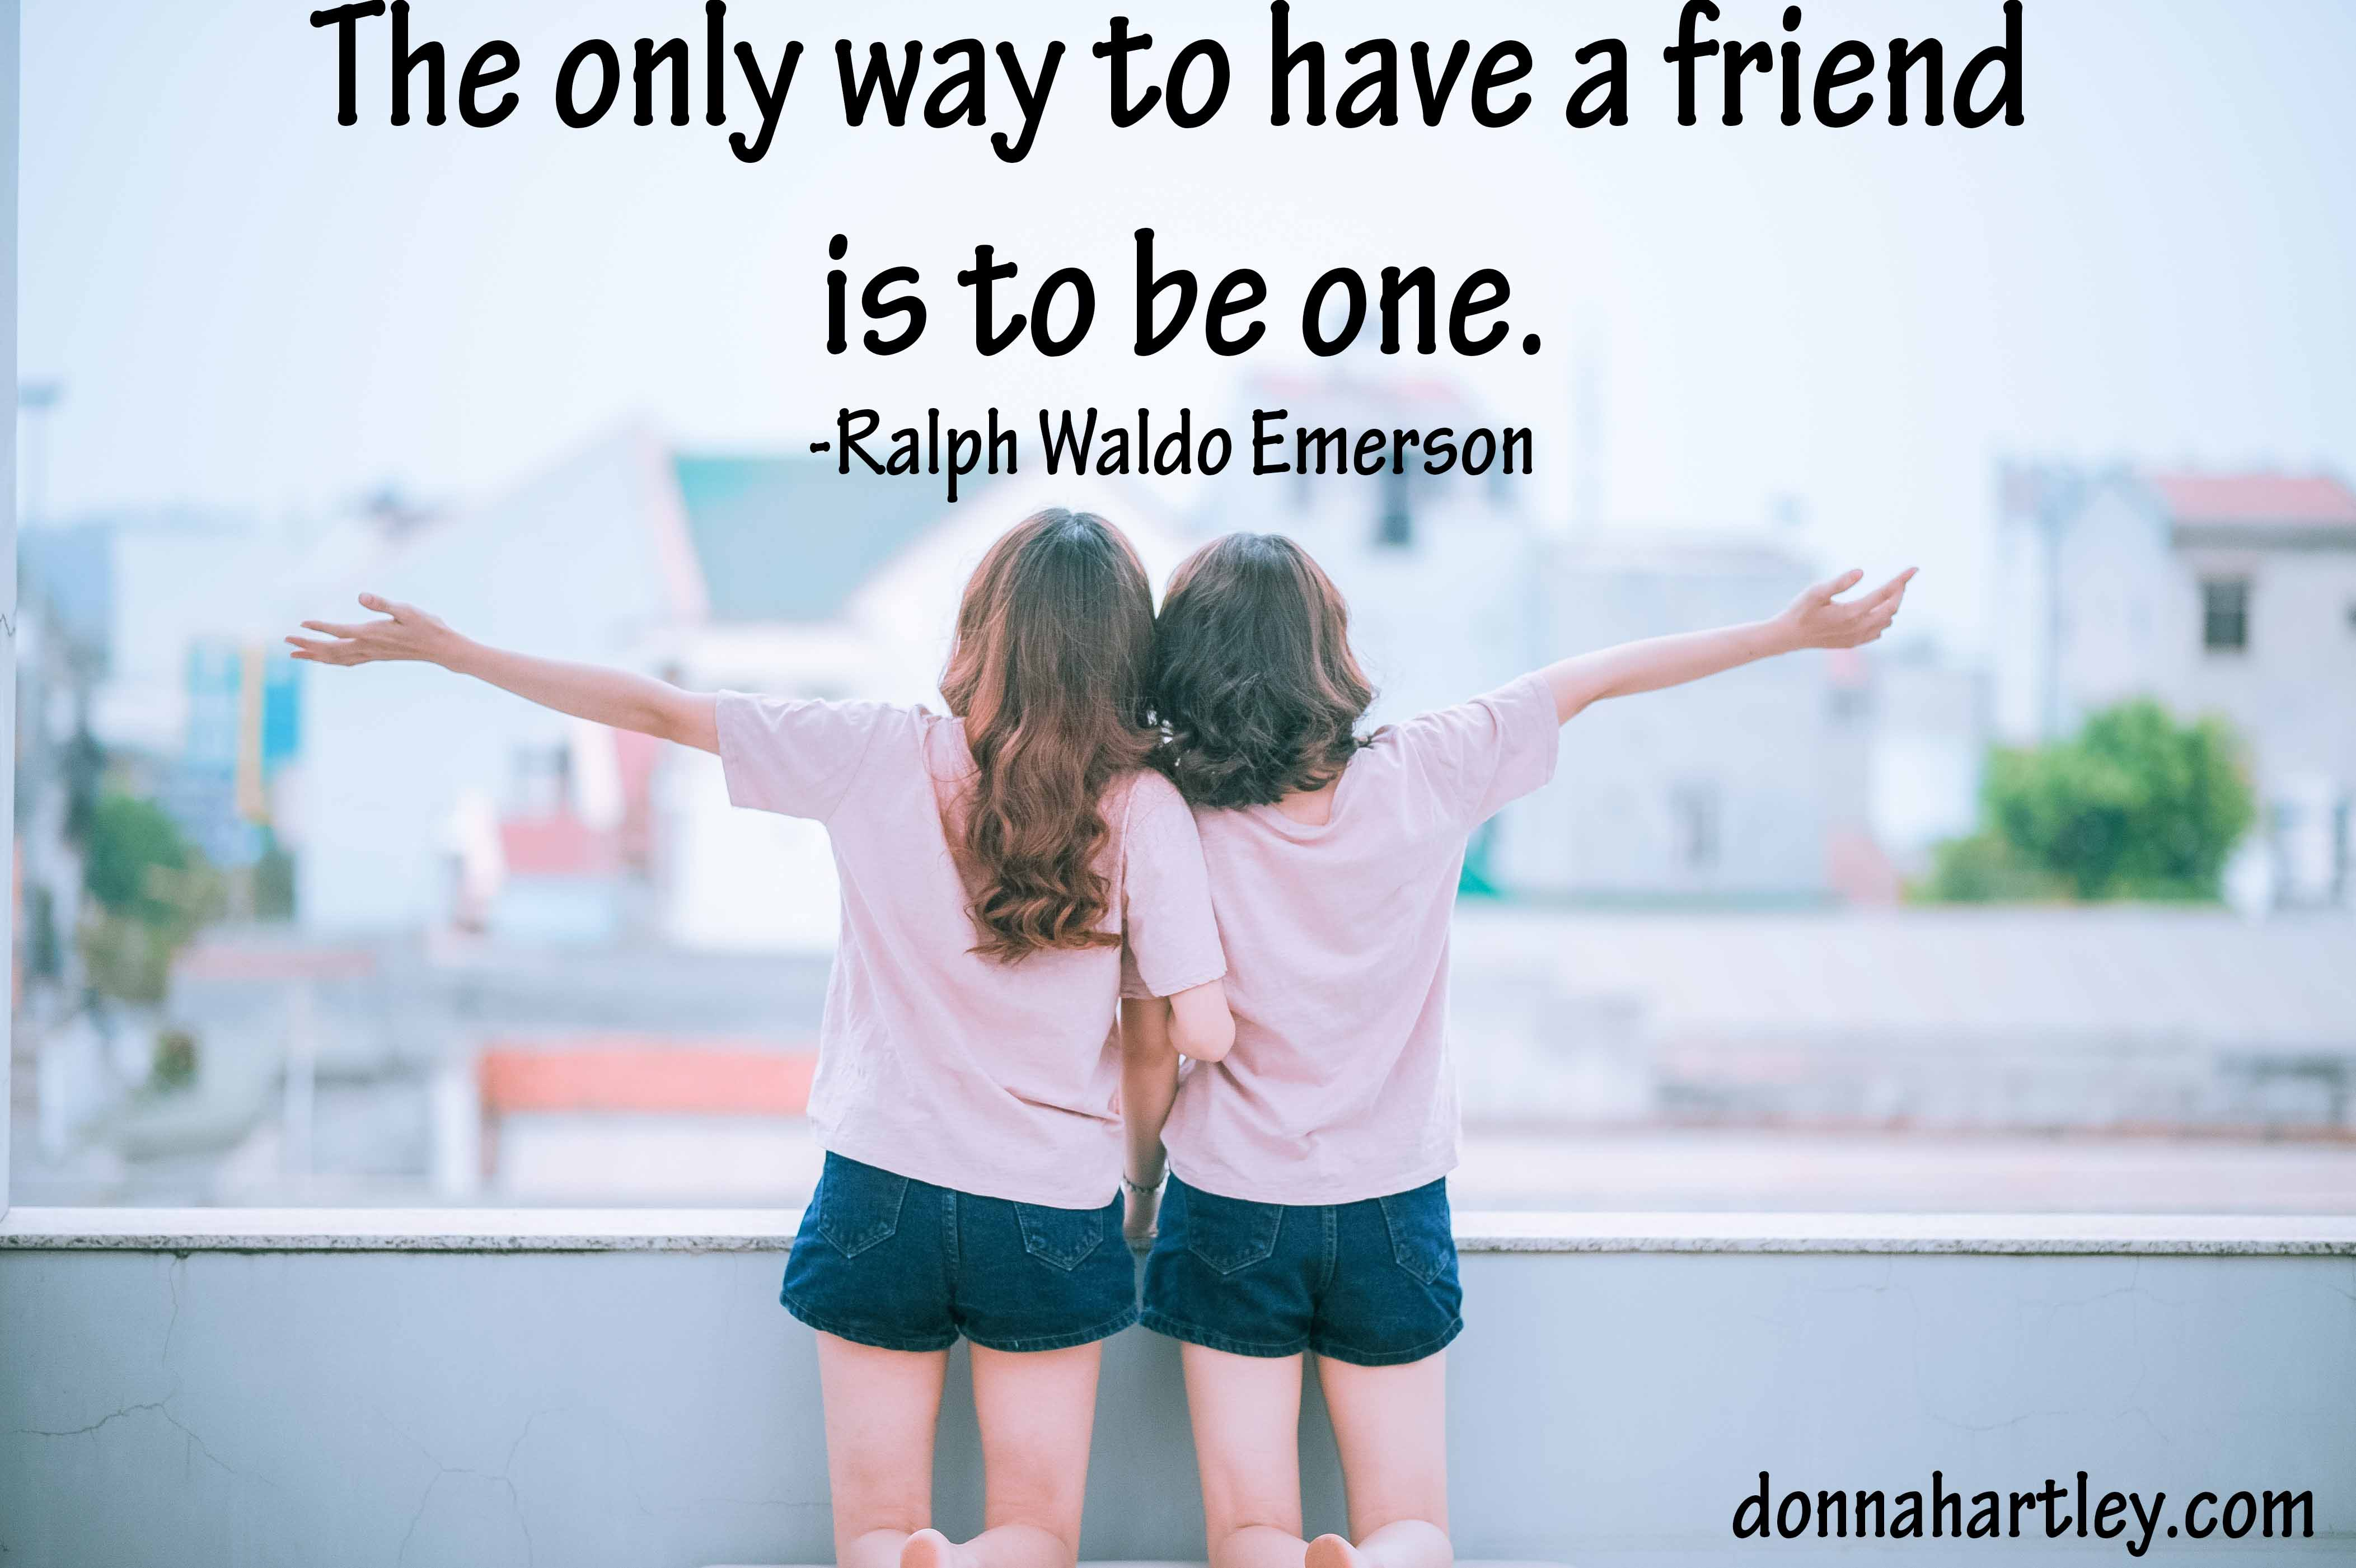 the only way to have a friend is to be one ralph waldo emerson